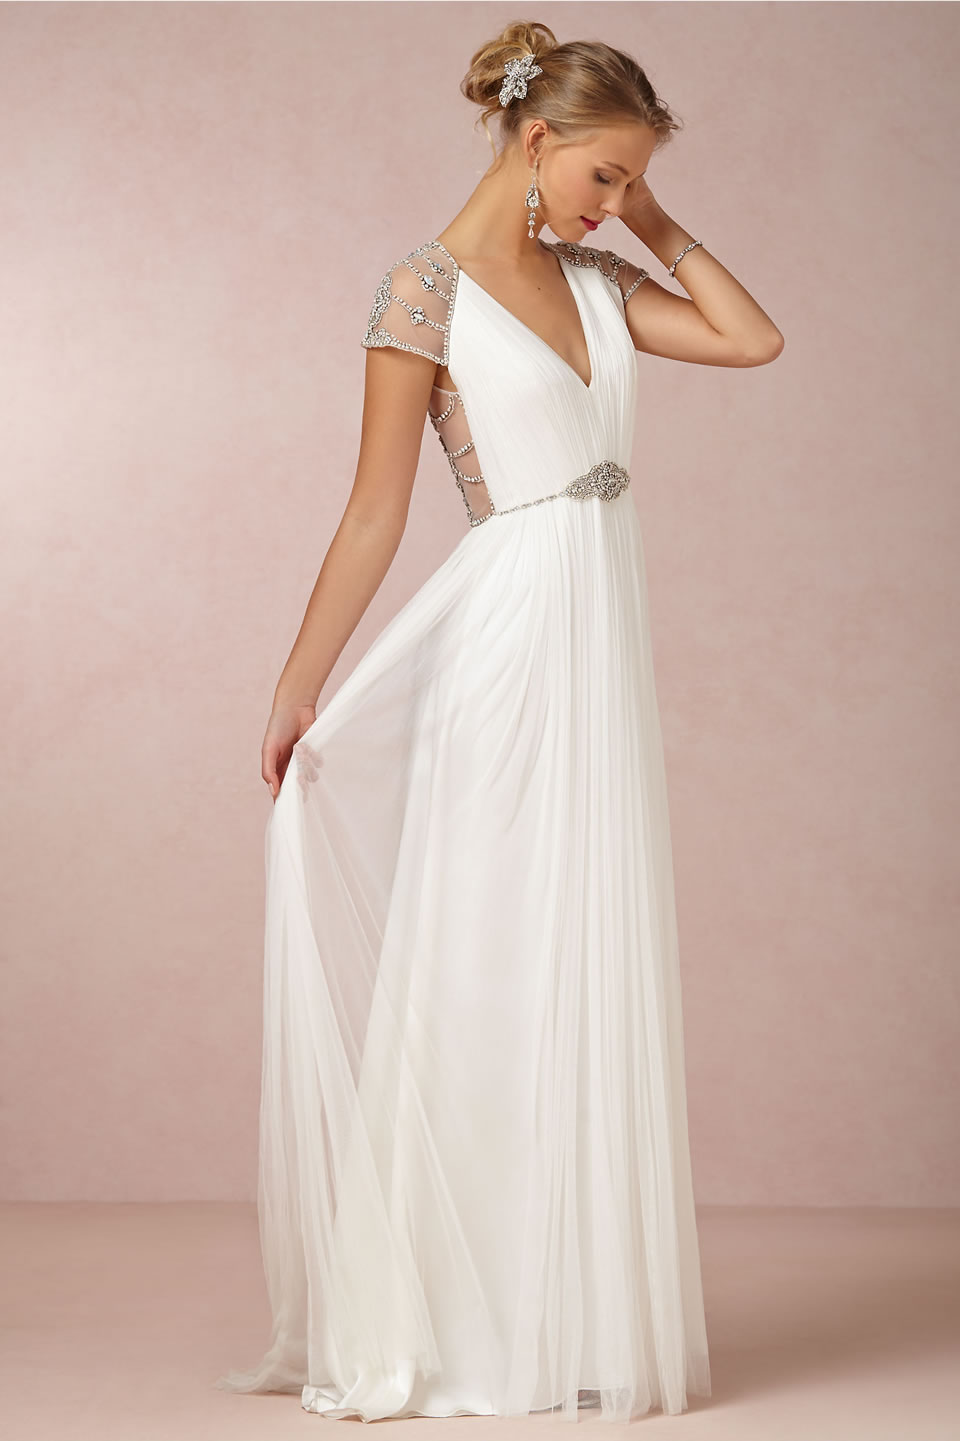 wedding dresses for short brides australia greek wedding dresses Lace Wedding Dress Australia Women U 39 S Gowns And Formal Dresses